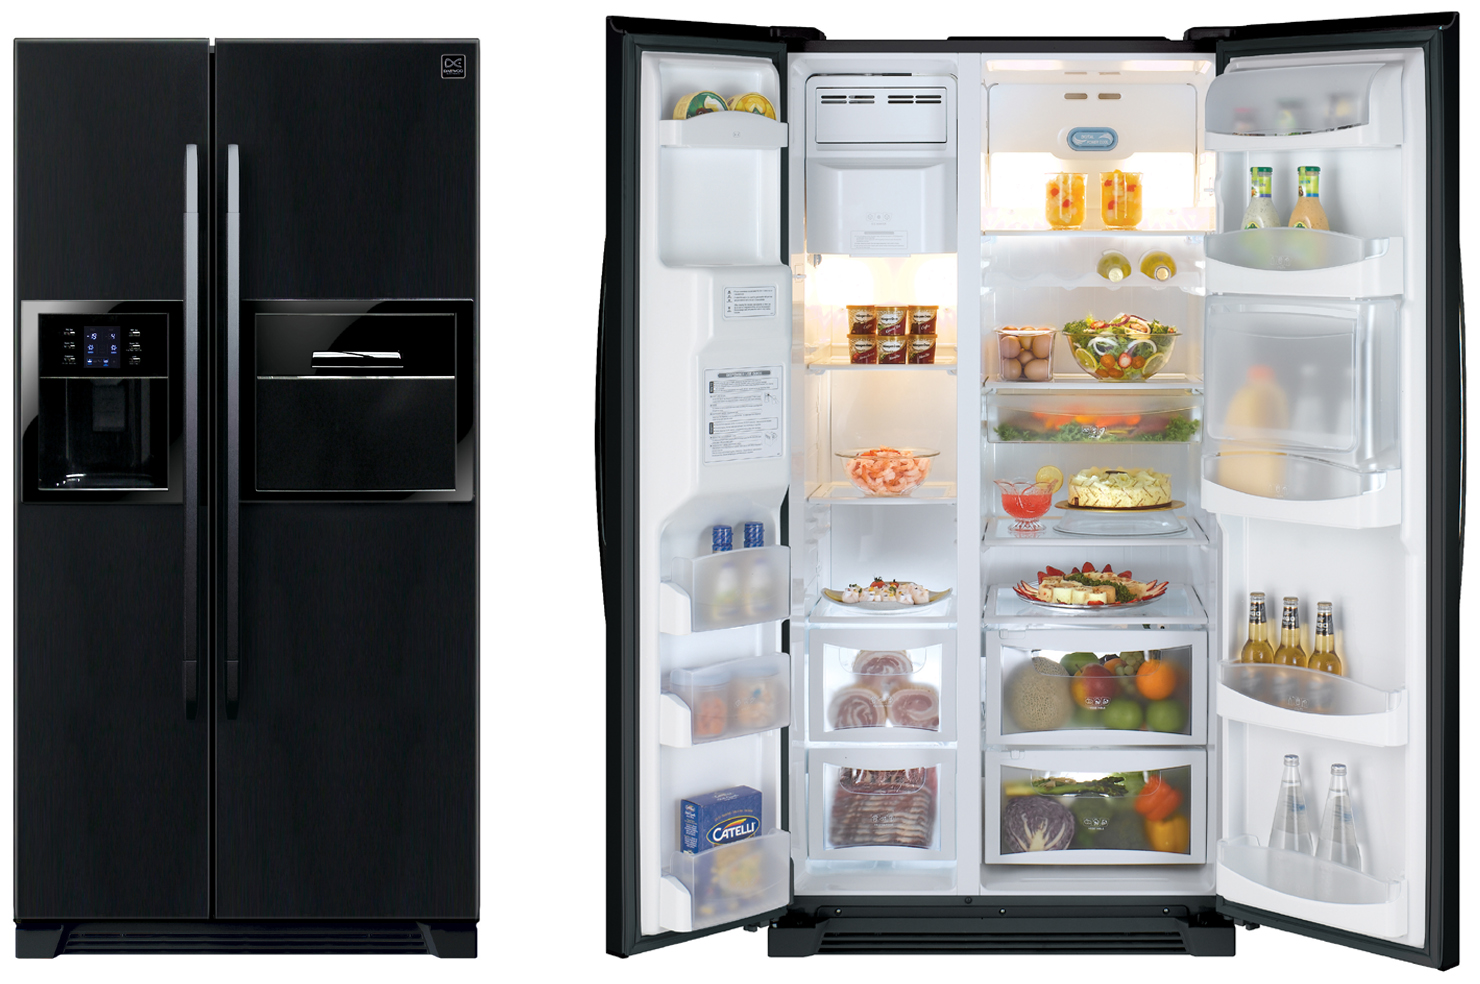 Open the refrigerator stainless steel refrigerator for Household refrigerator design